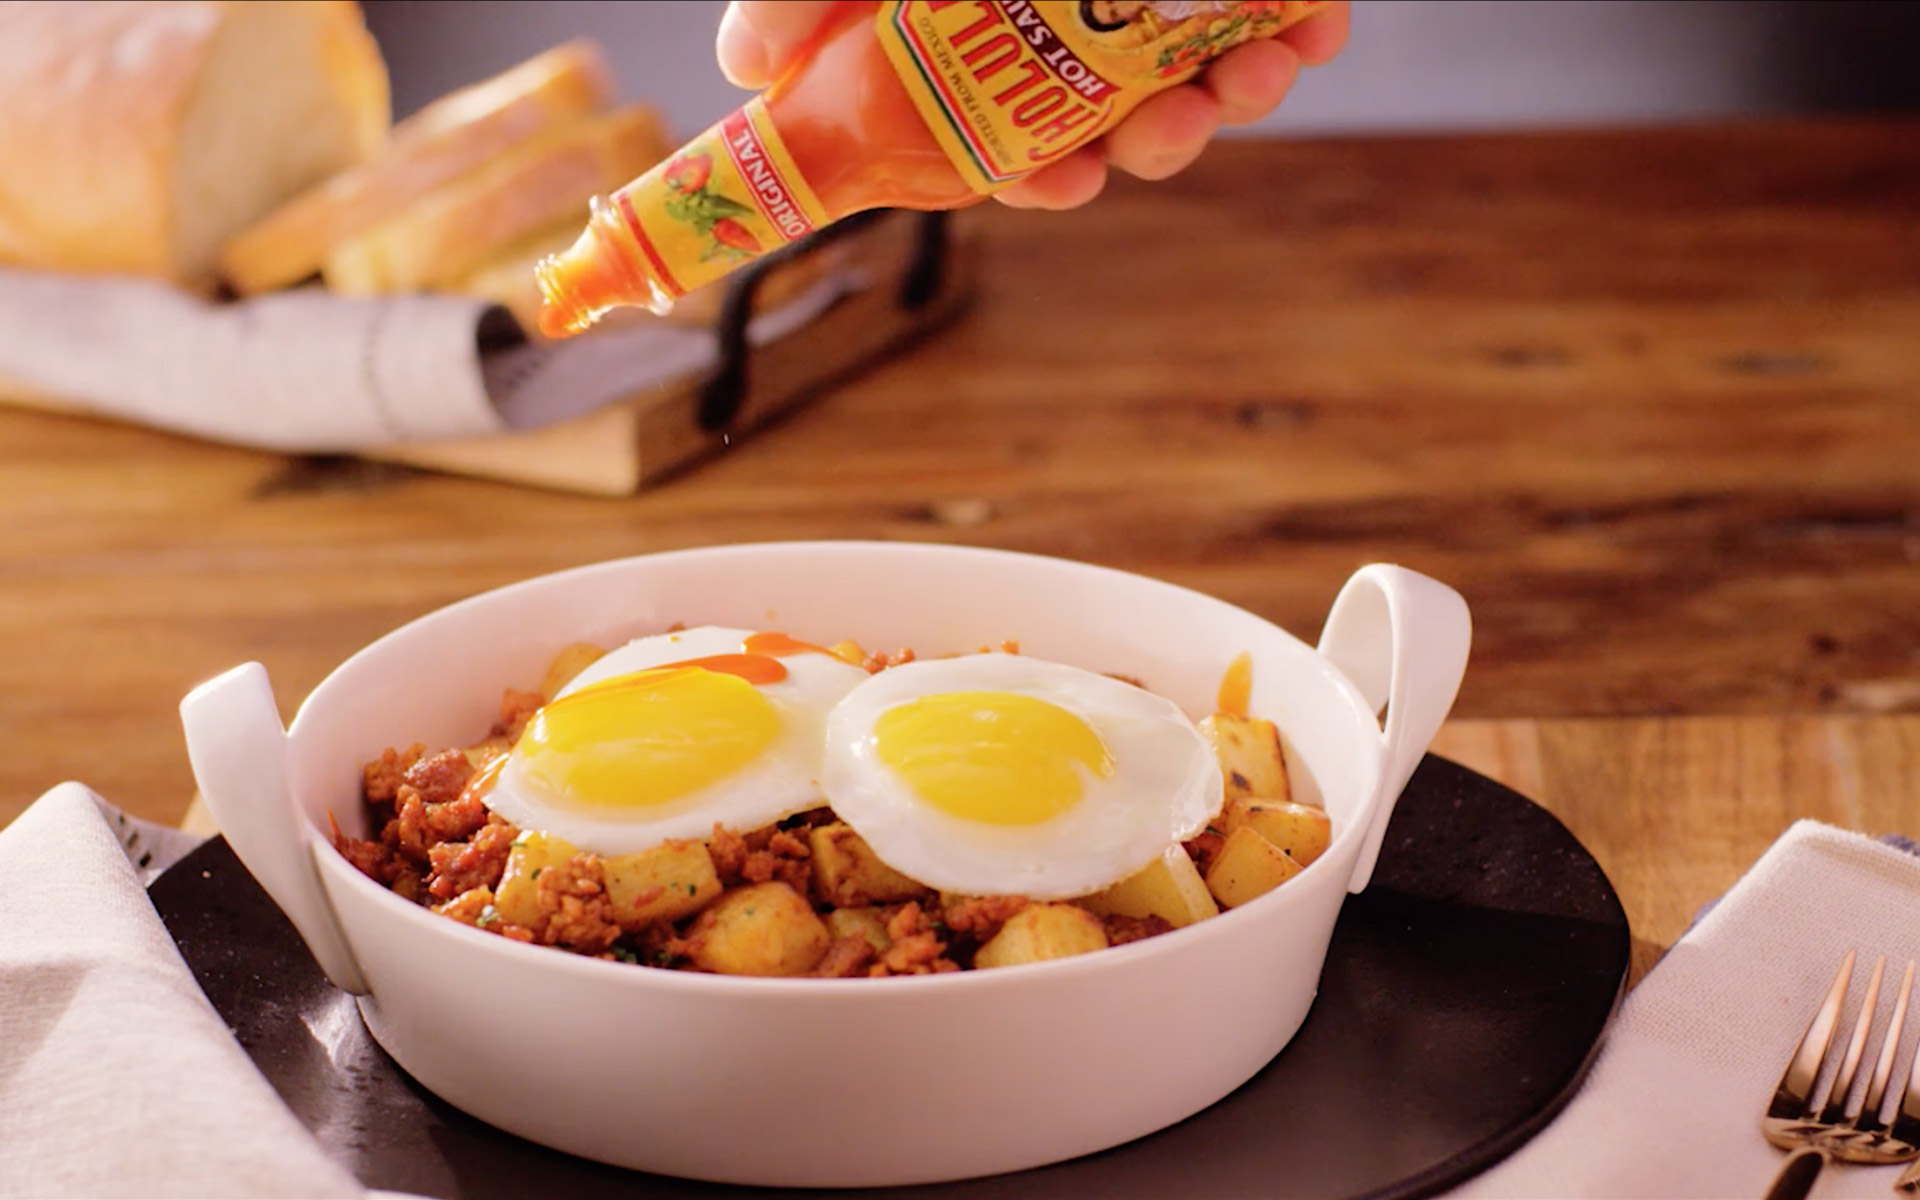 Adding Cholula Hot Sauce to a roasted potatoes & fried eggs meal - Fuse